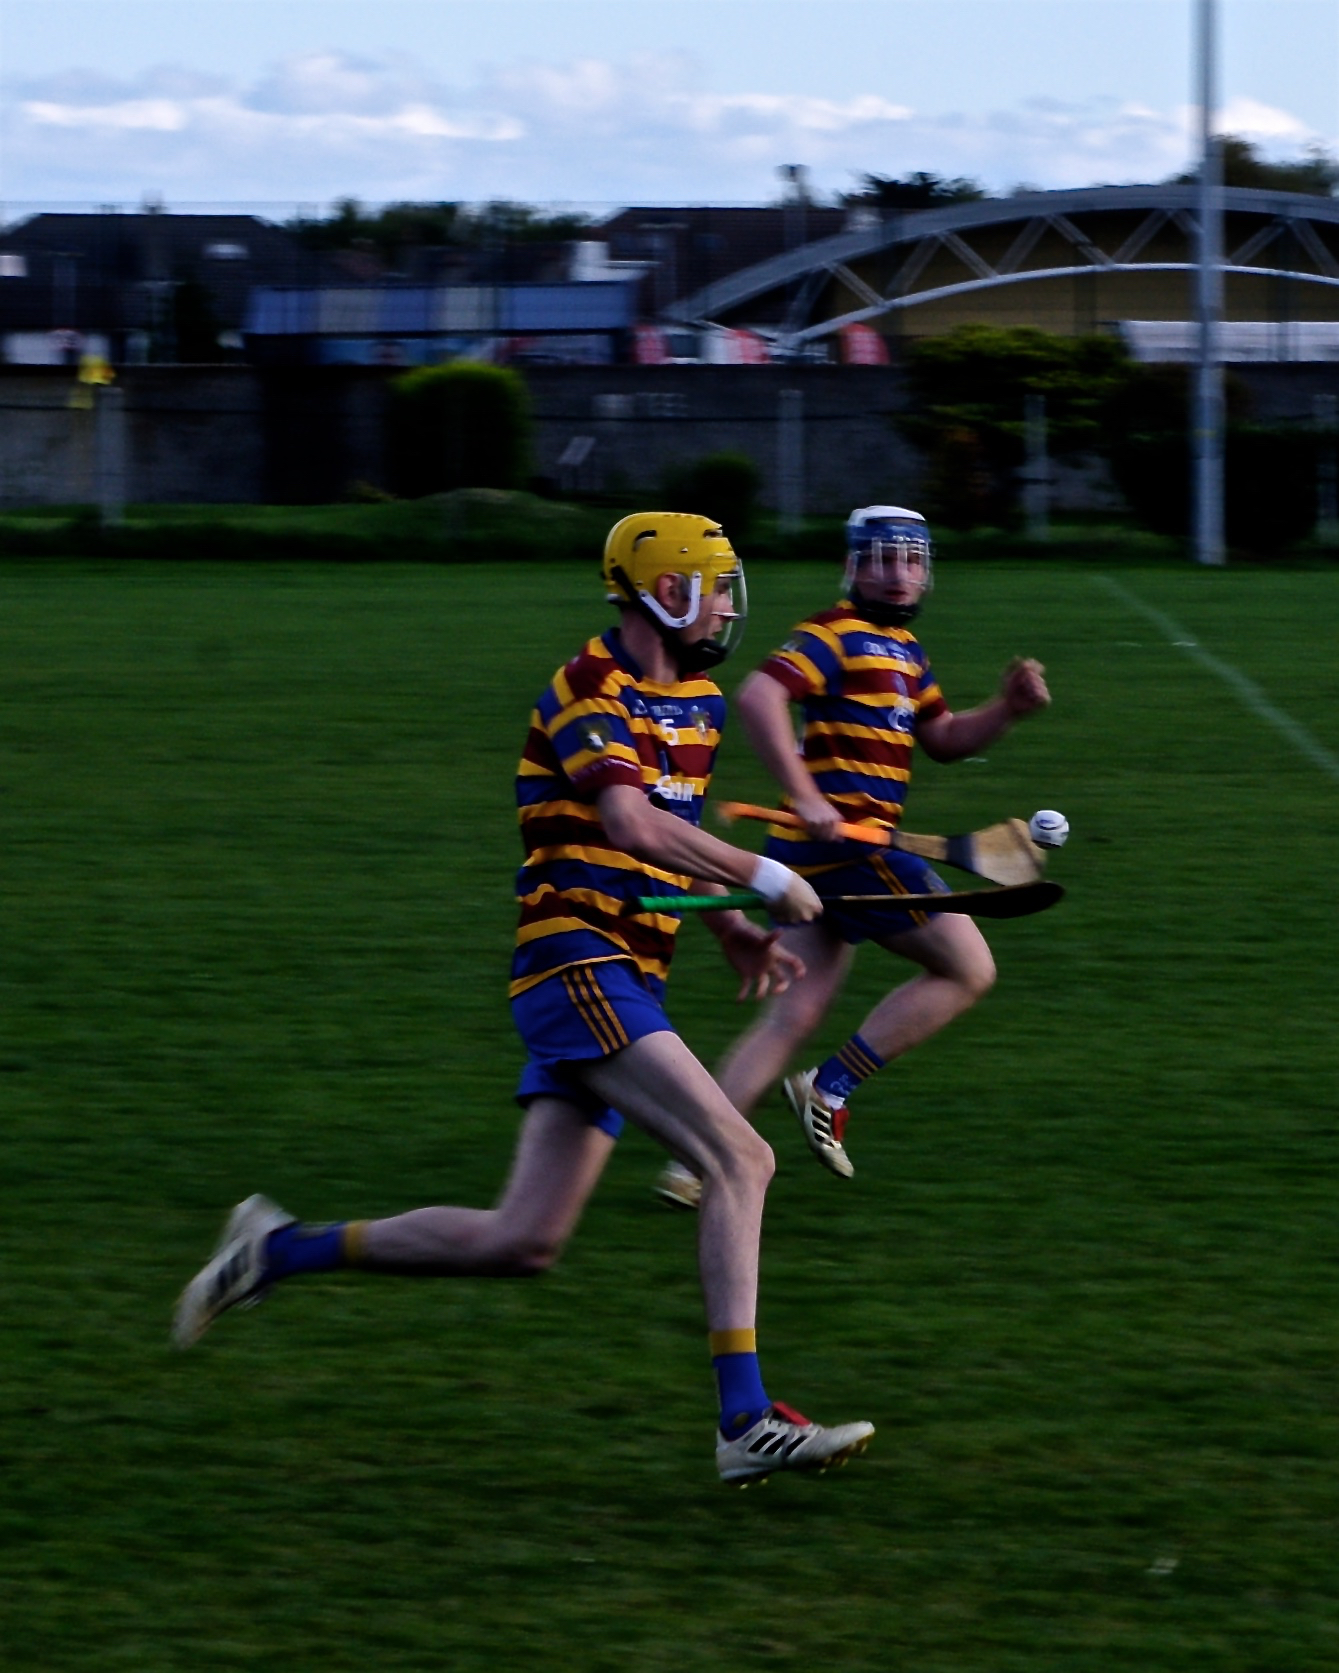 Daragh Levins on one of his many solo runs on Saturday, with Robbie Kennedy ready in support